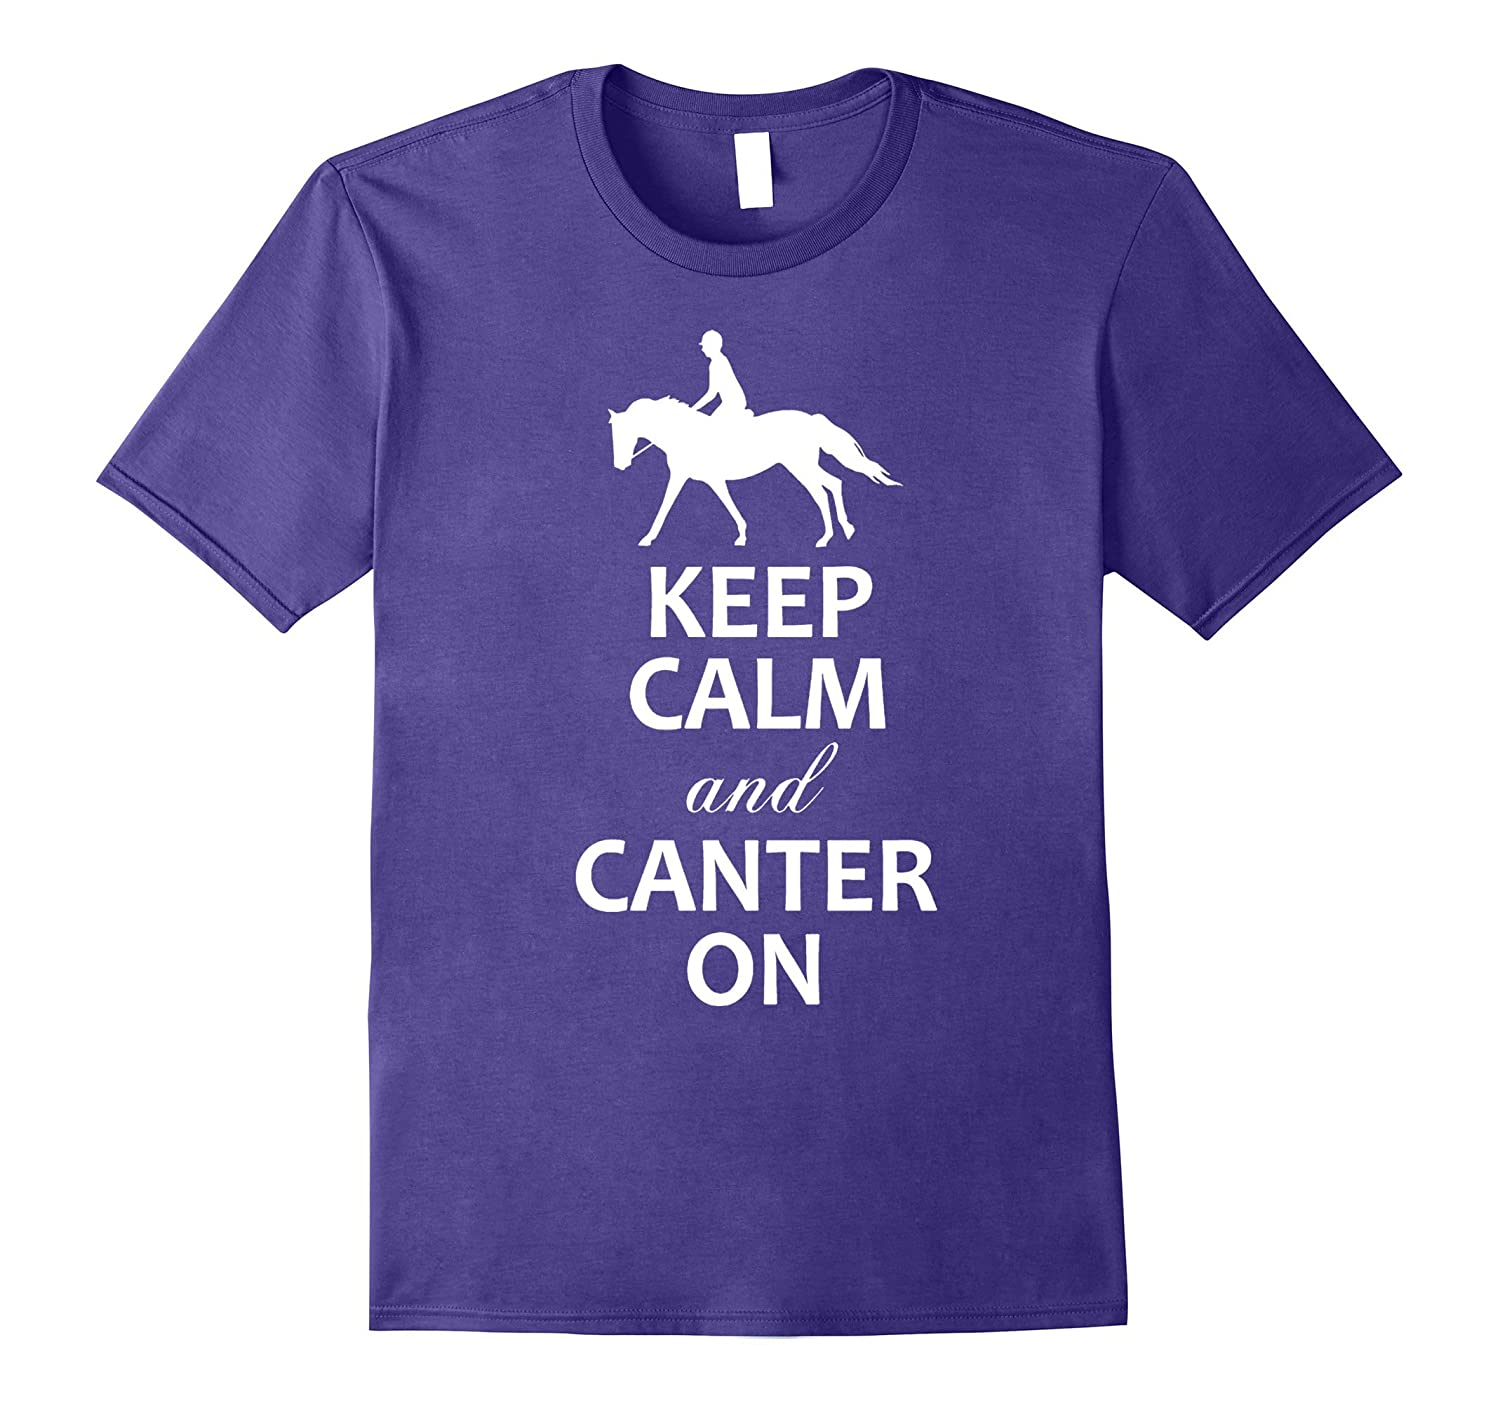 Keep Calm and Canter On shirt - Gifts for Horse Lovers-Vaci